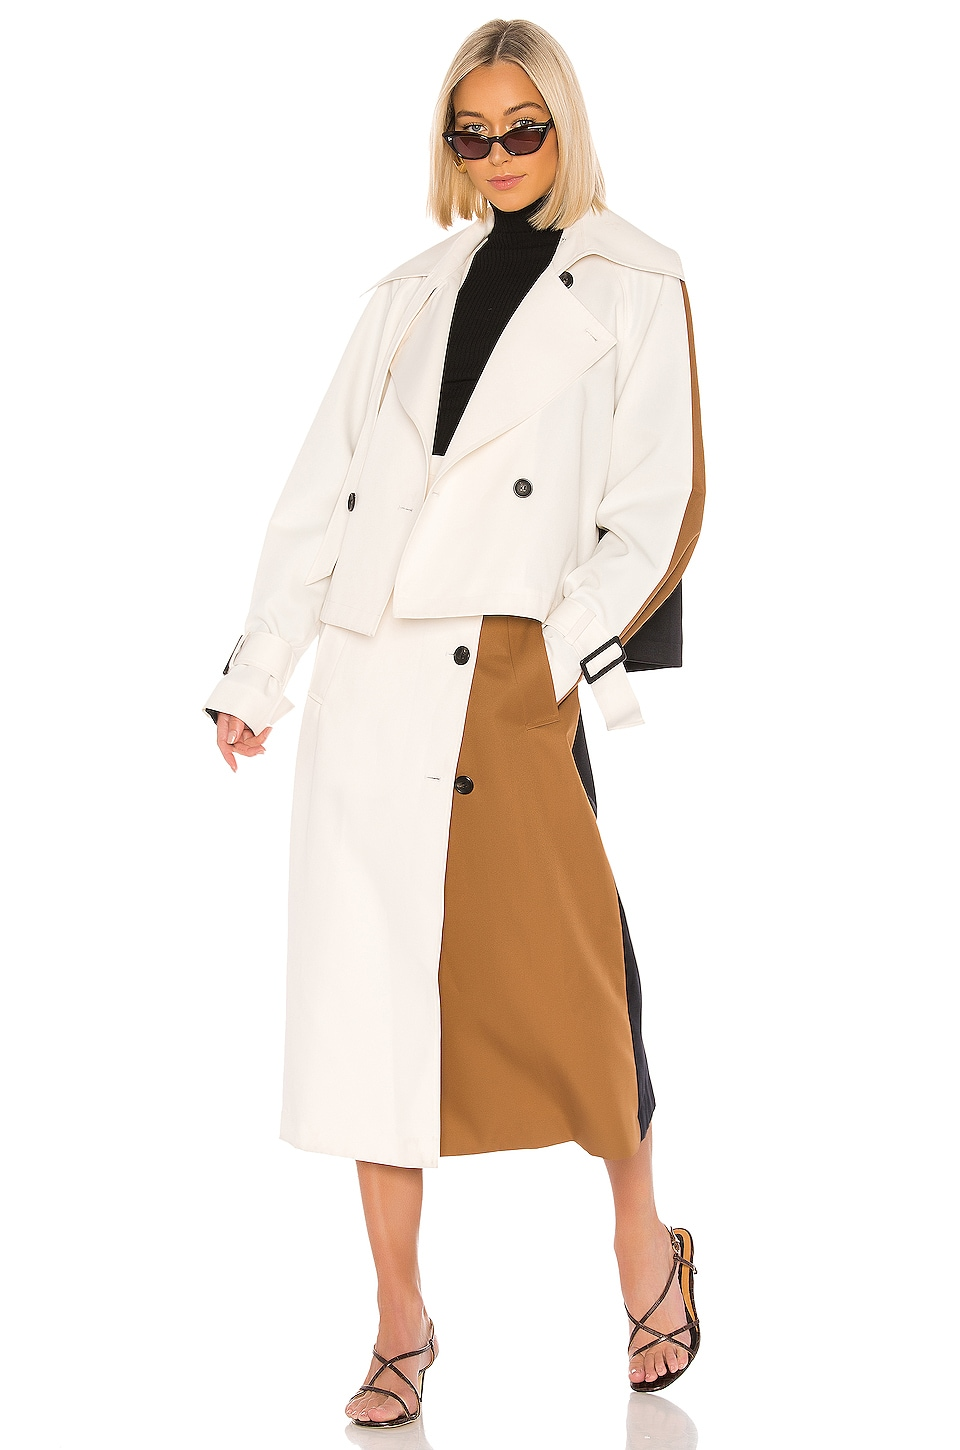 Tibi Techy Twill Color Block Detachable Trench in Ivory Multi